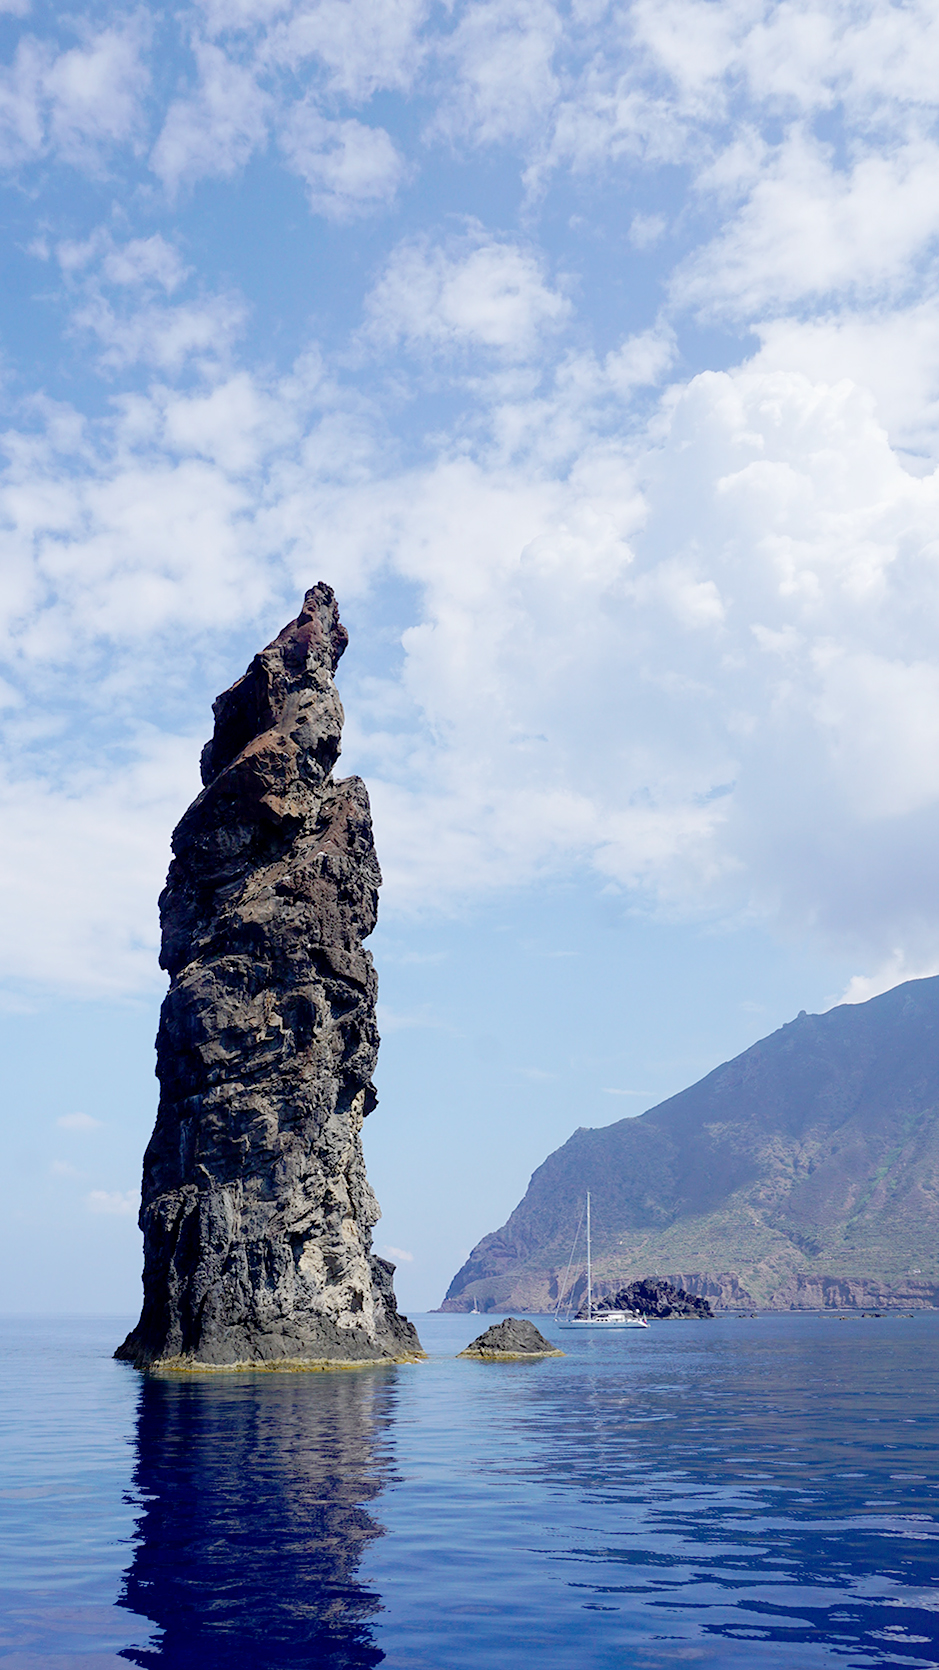 How to Make the Most of Visiting Aeolian Islands in Italy #stromboli #filicudi #alicudi #salina #lipari #aeolianisland #aeolianislands #cafes #italy #islandhopping #wanderlust #fashionblog #travelblog #travelblogger #traveler #italyvacations #visitingitaly #italyideas #placestovisit #italy #islandhopping #europevacations